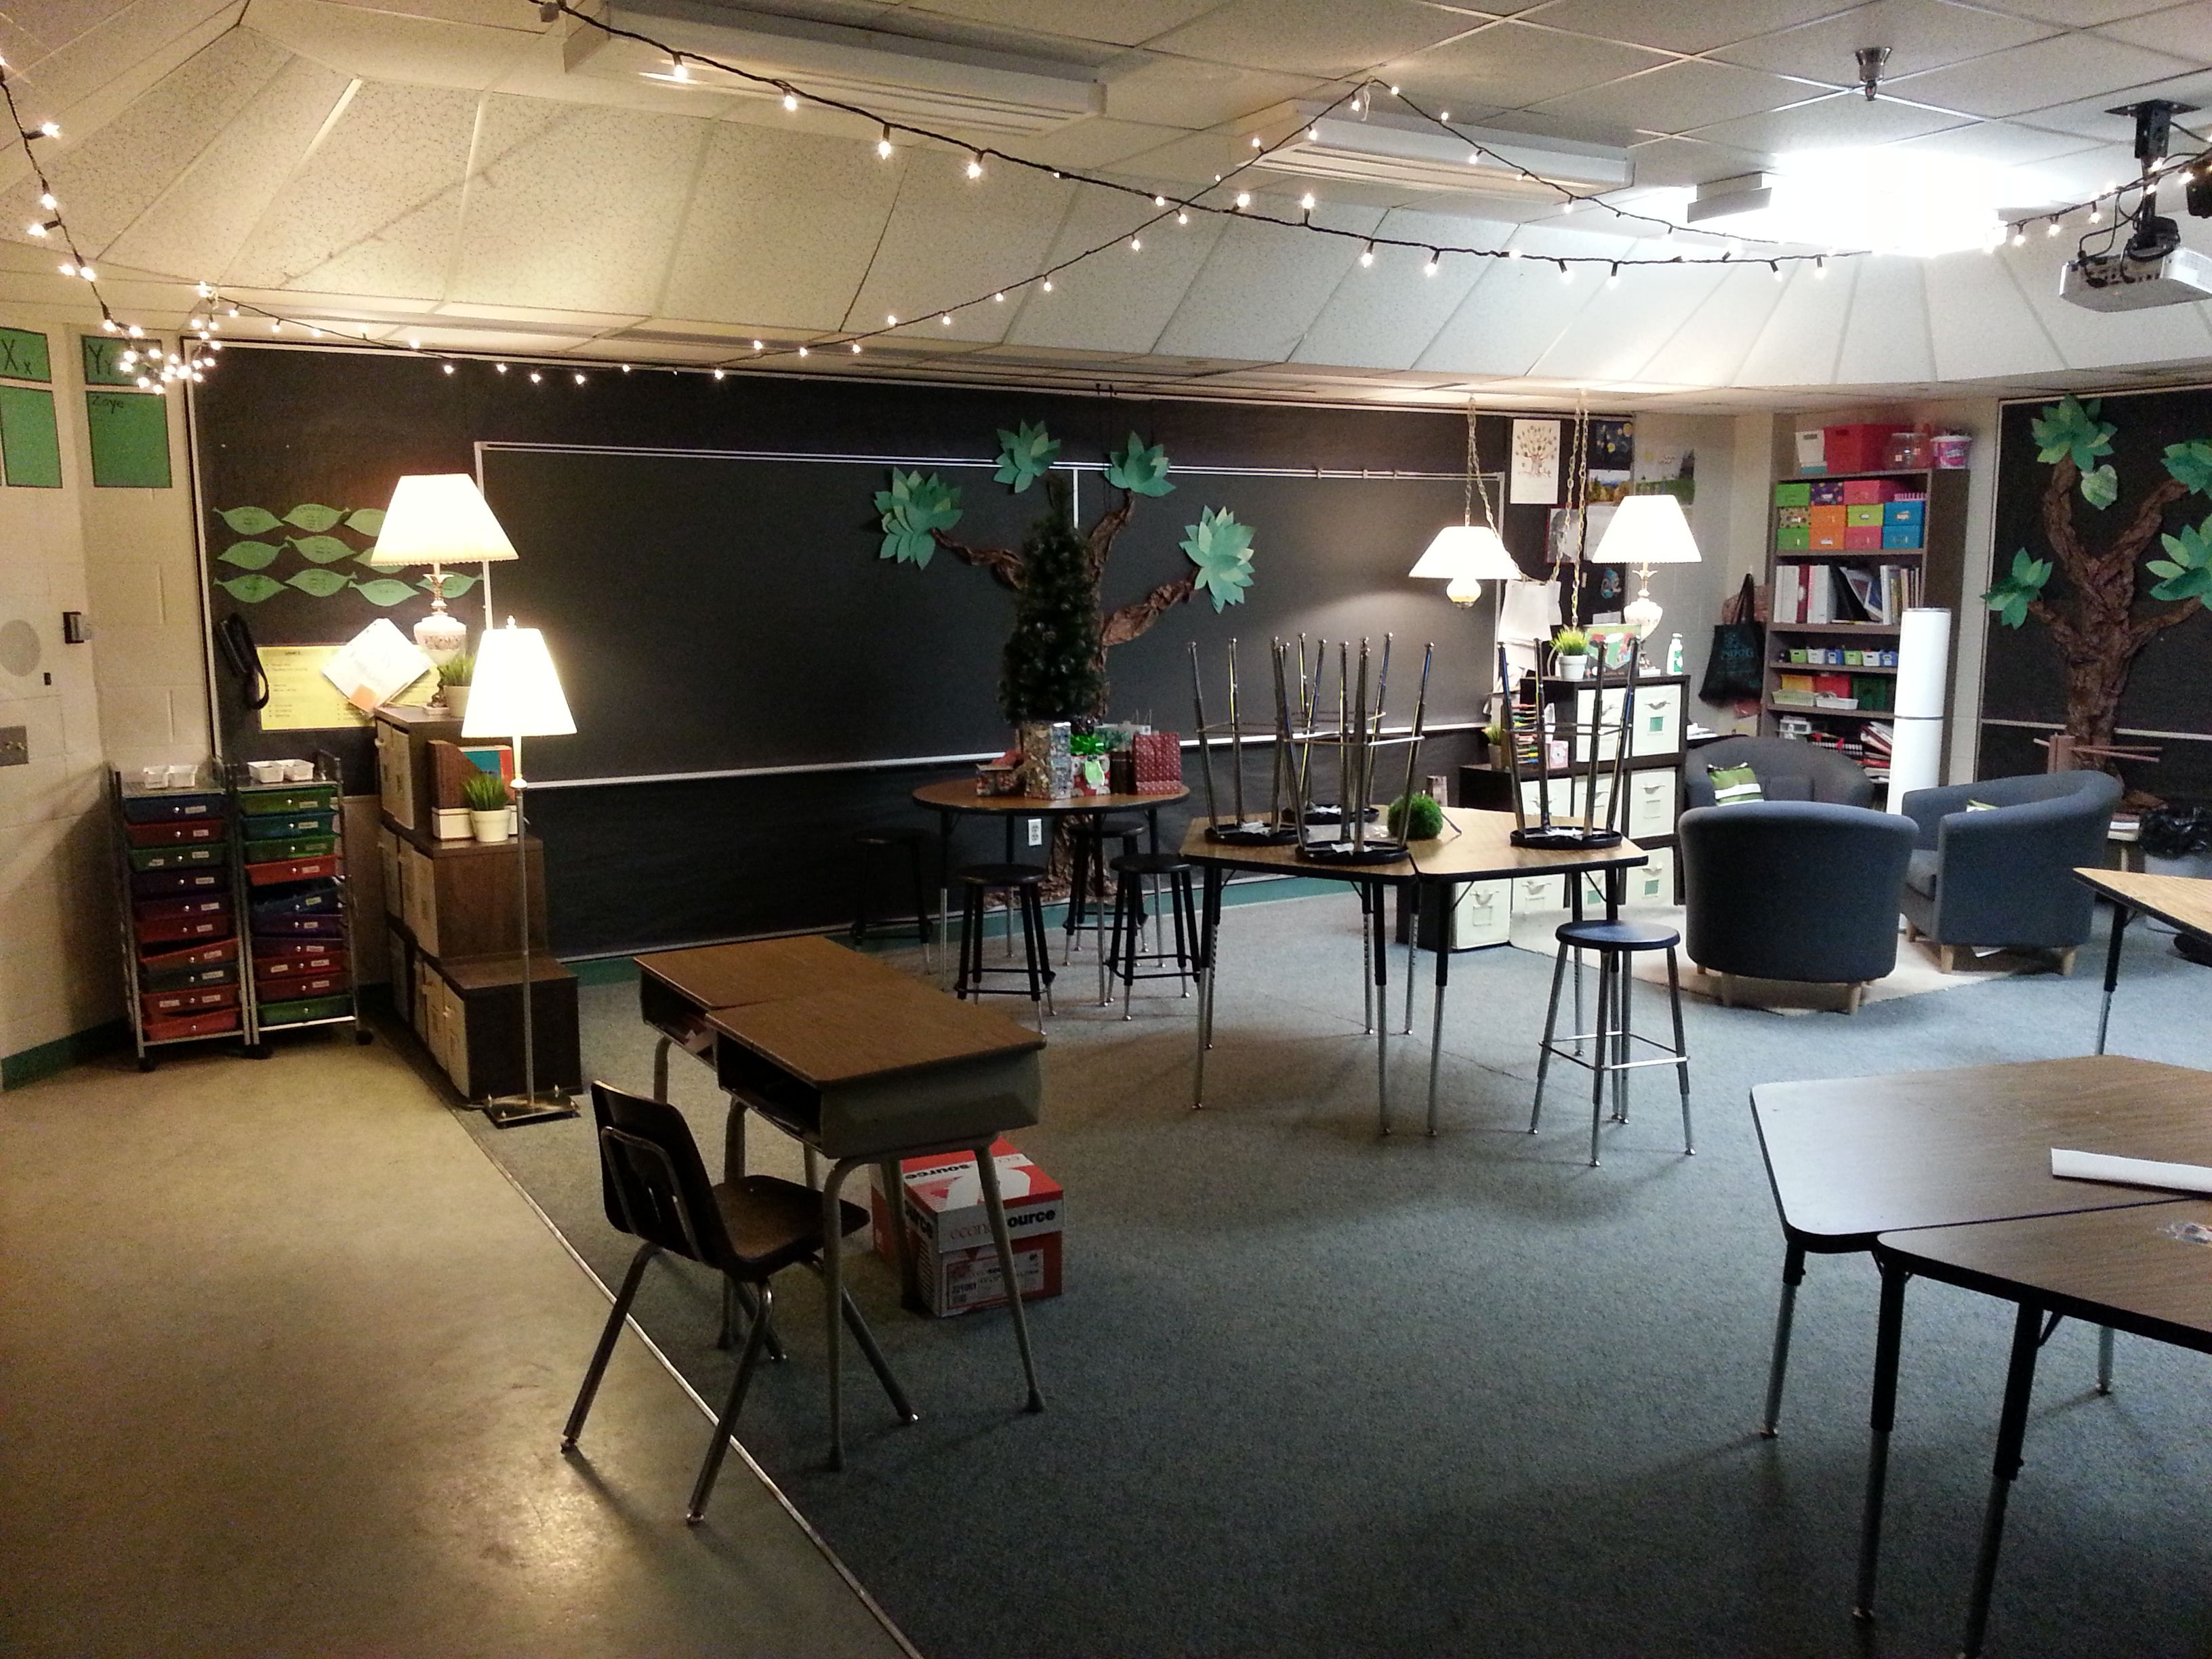 Modern Classroom Seating Arrangement ~ This room has it all lamps and rope lights open feel